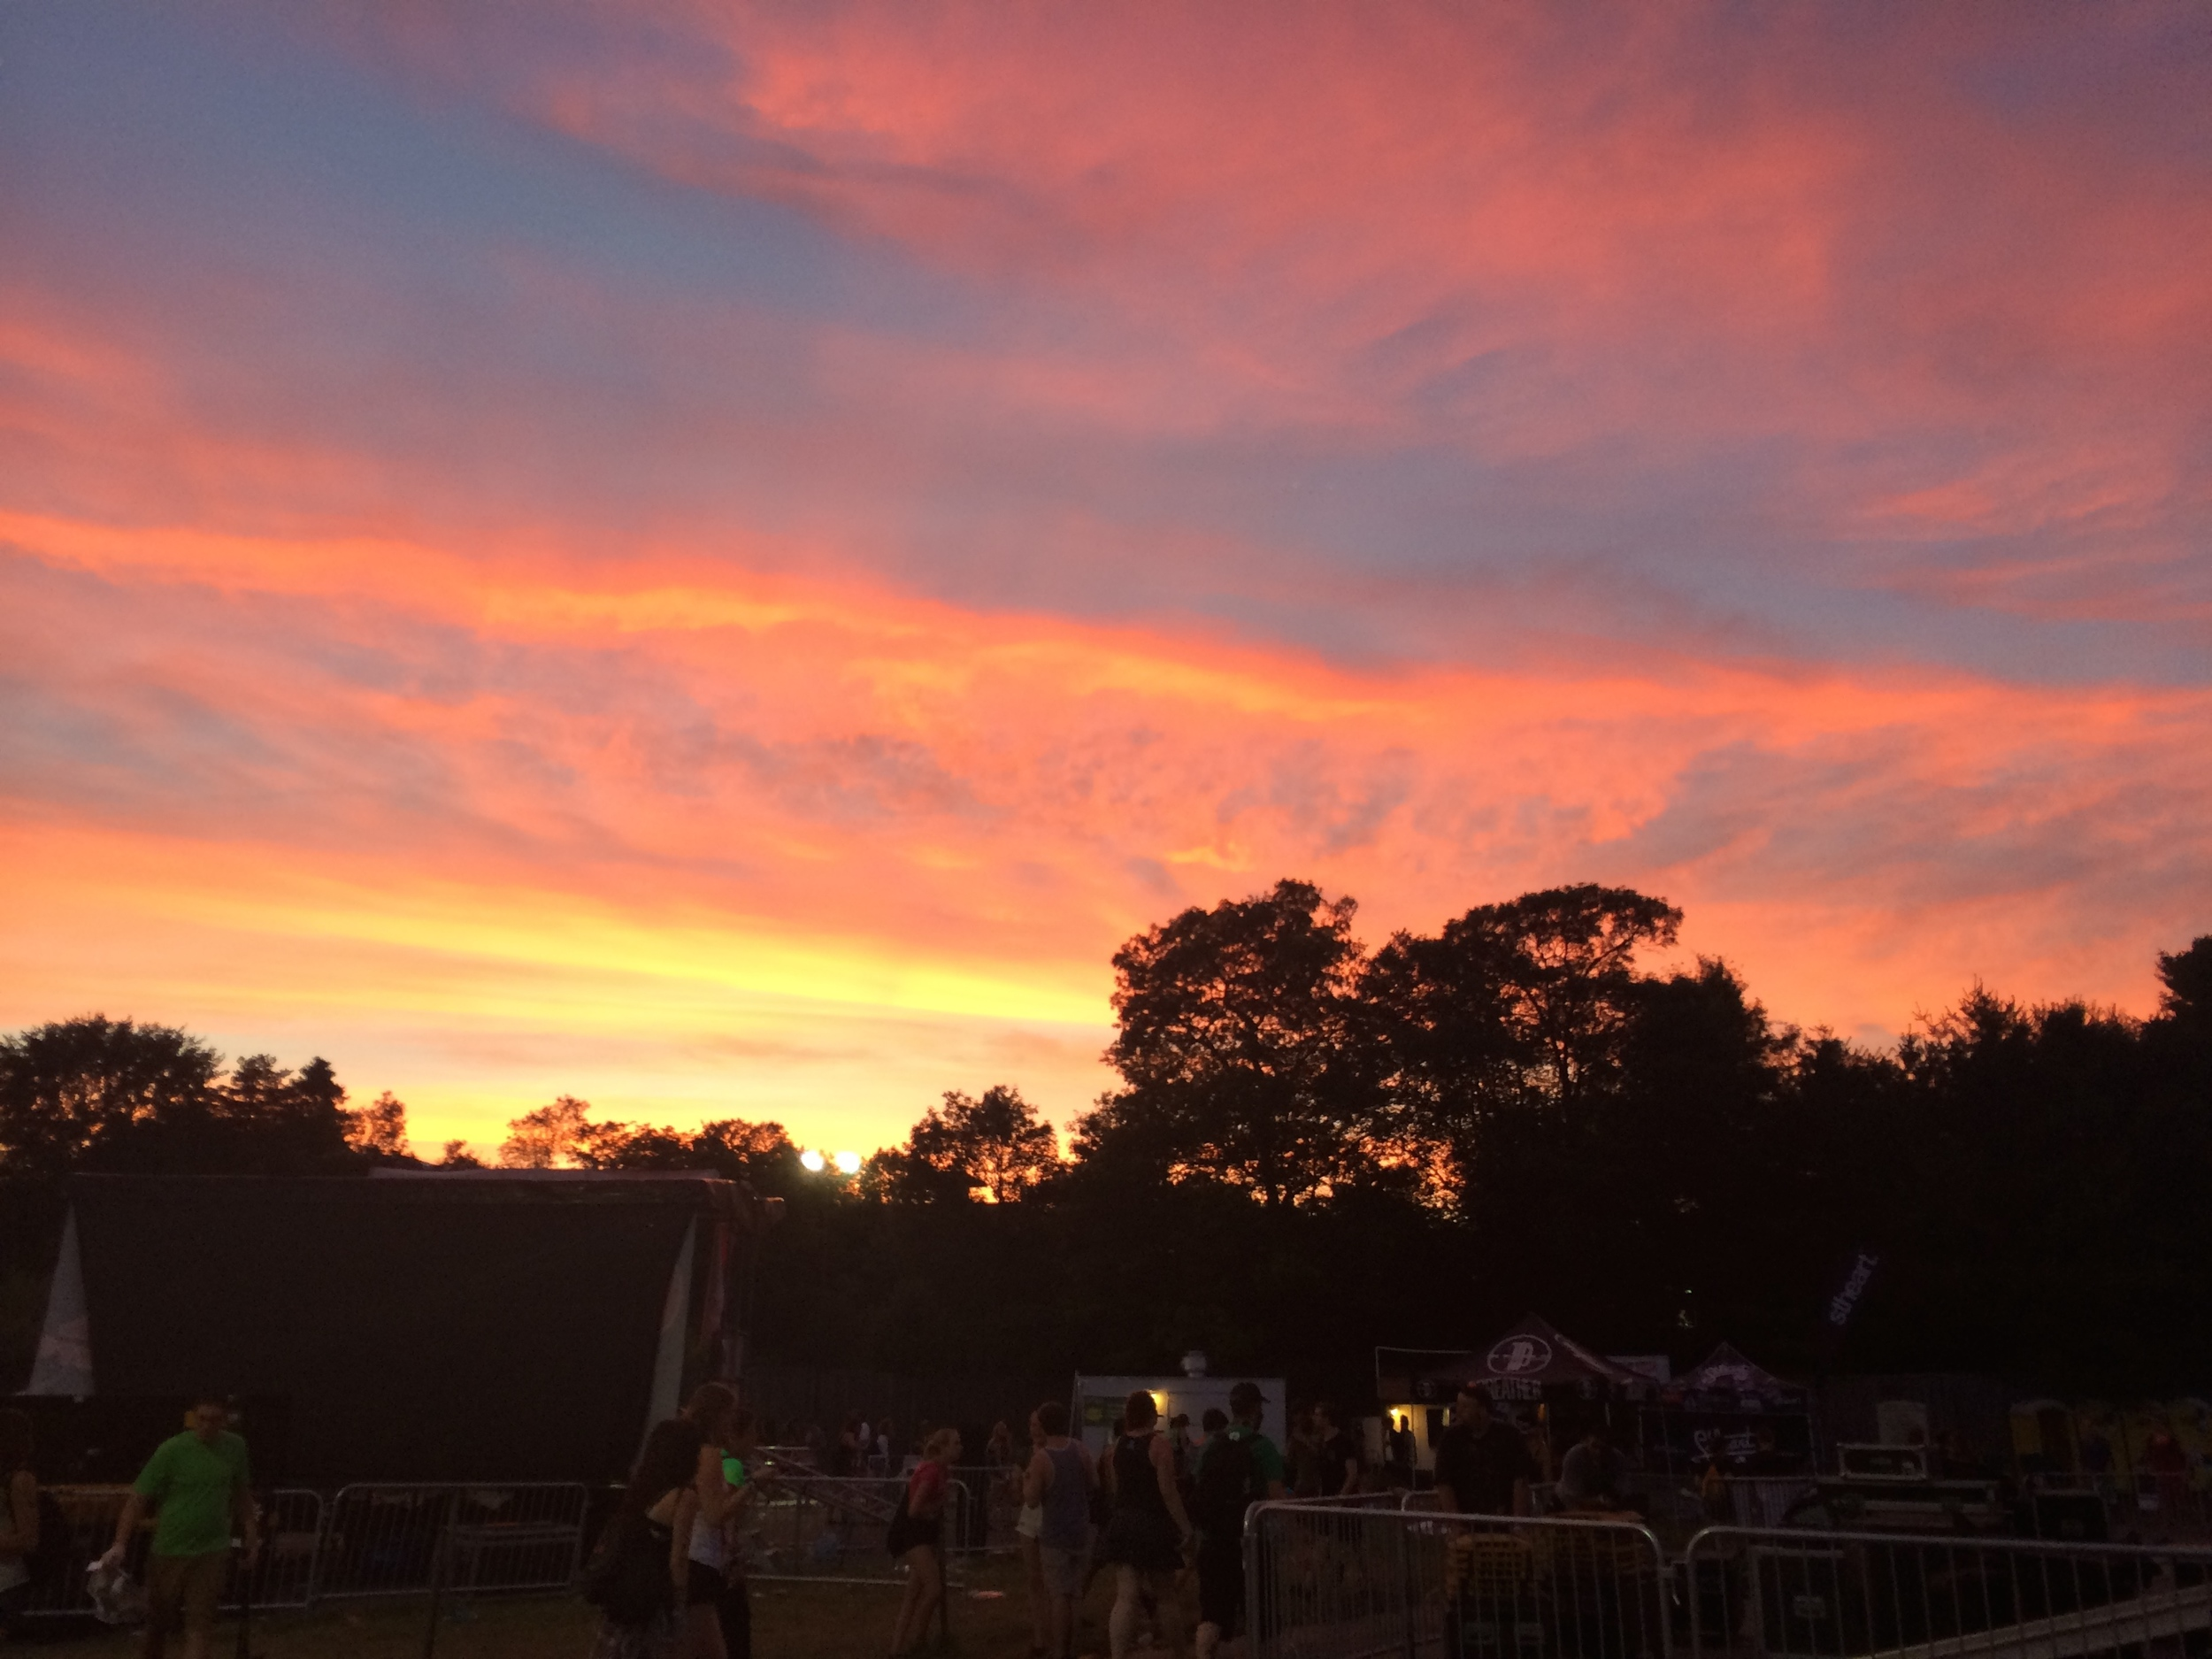 the sunset over the venue in Boston, MA.